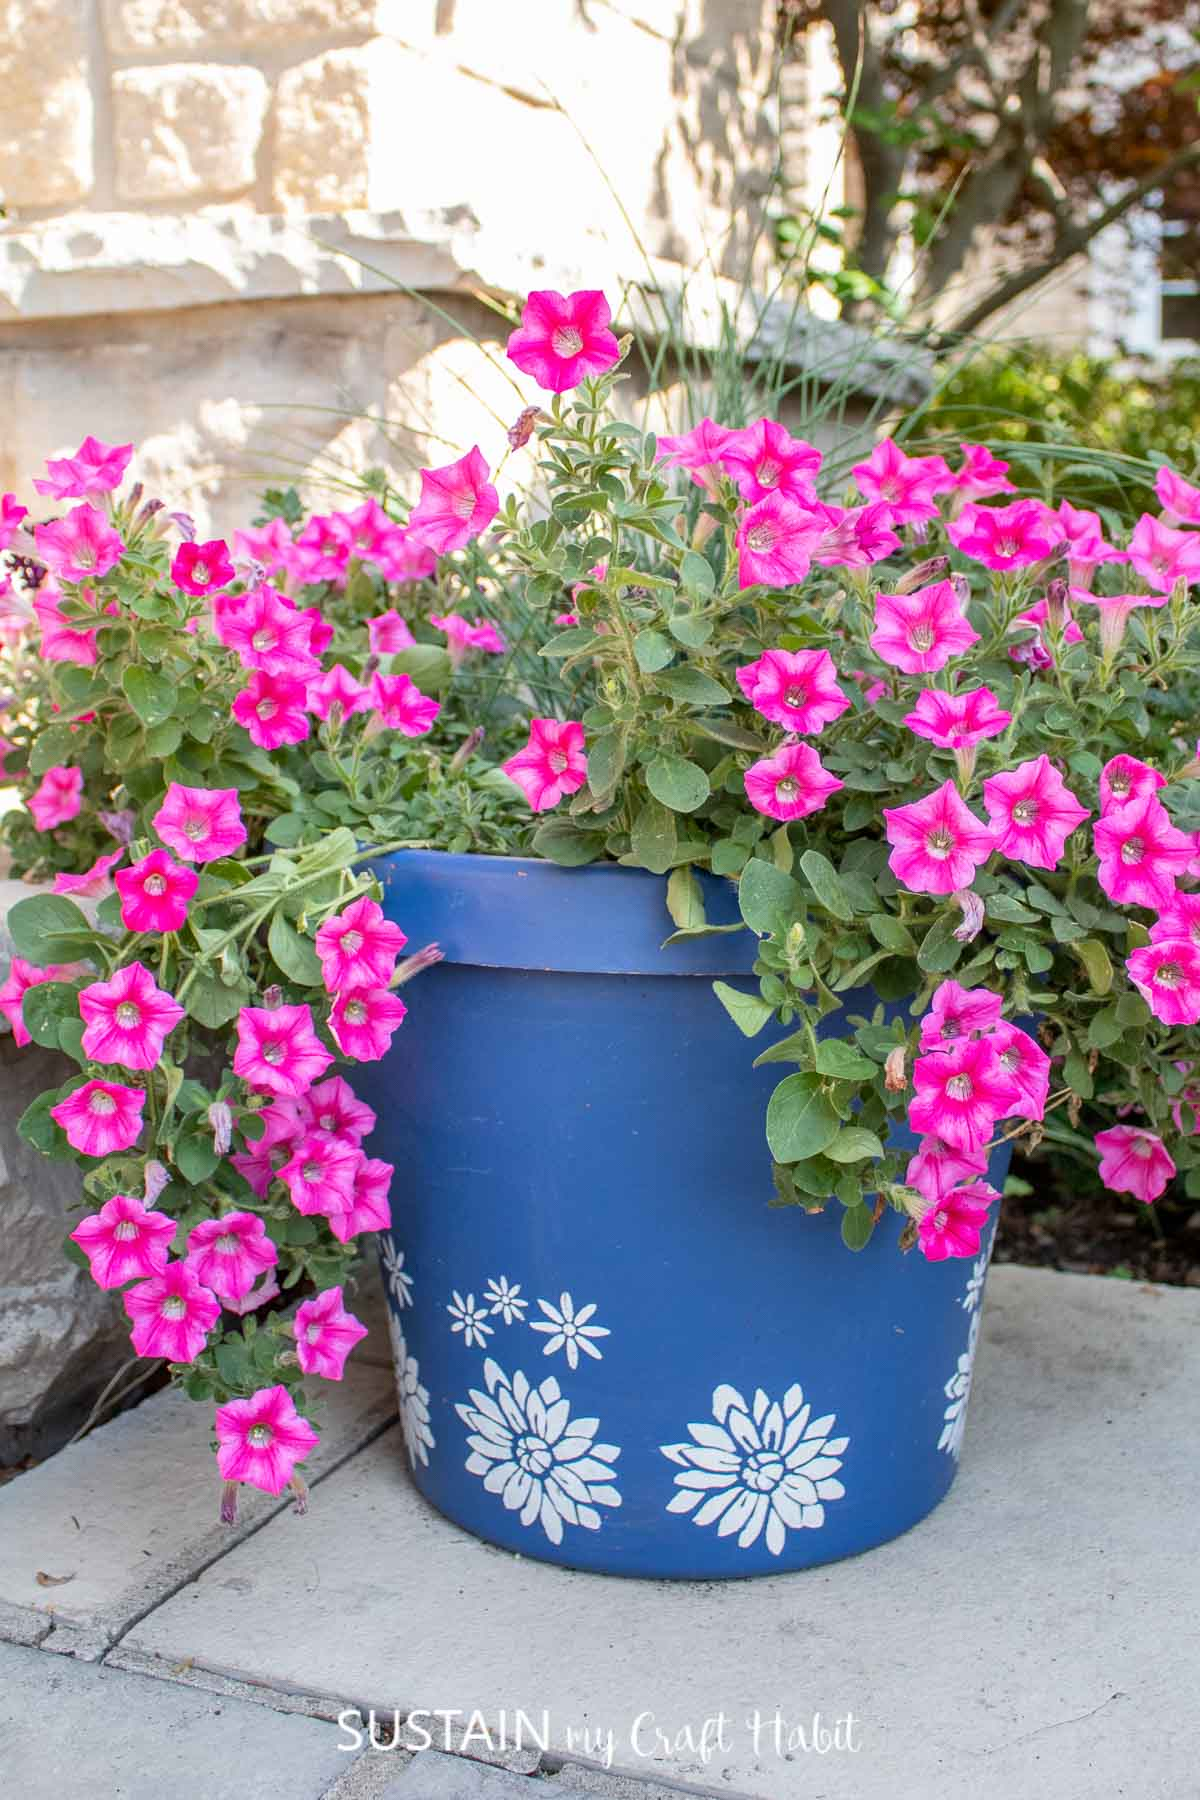 A bright blue planter with white stenciled flowers. They planter is overflowing with fresh pink flowers.